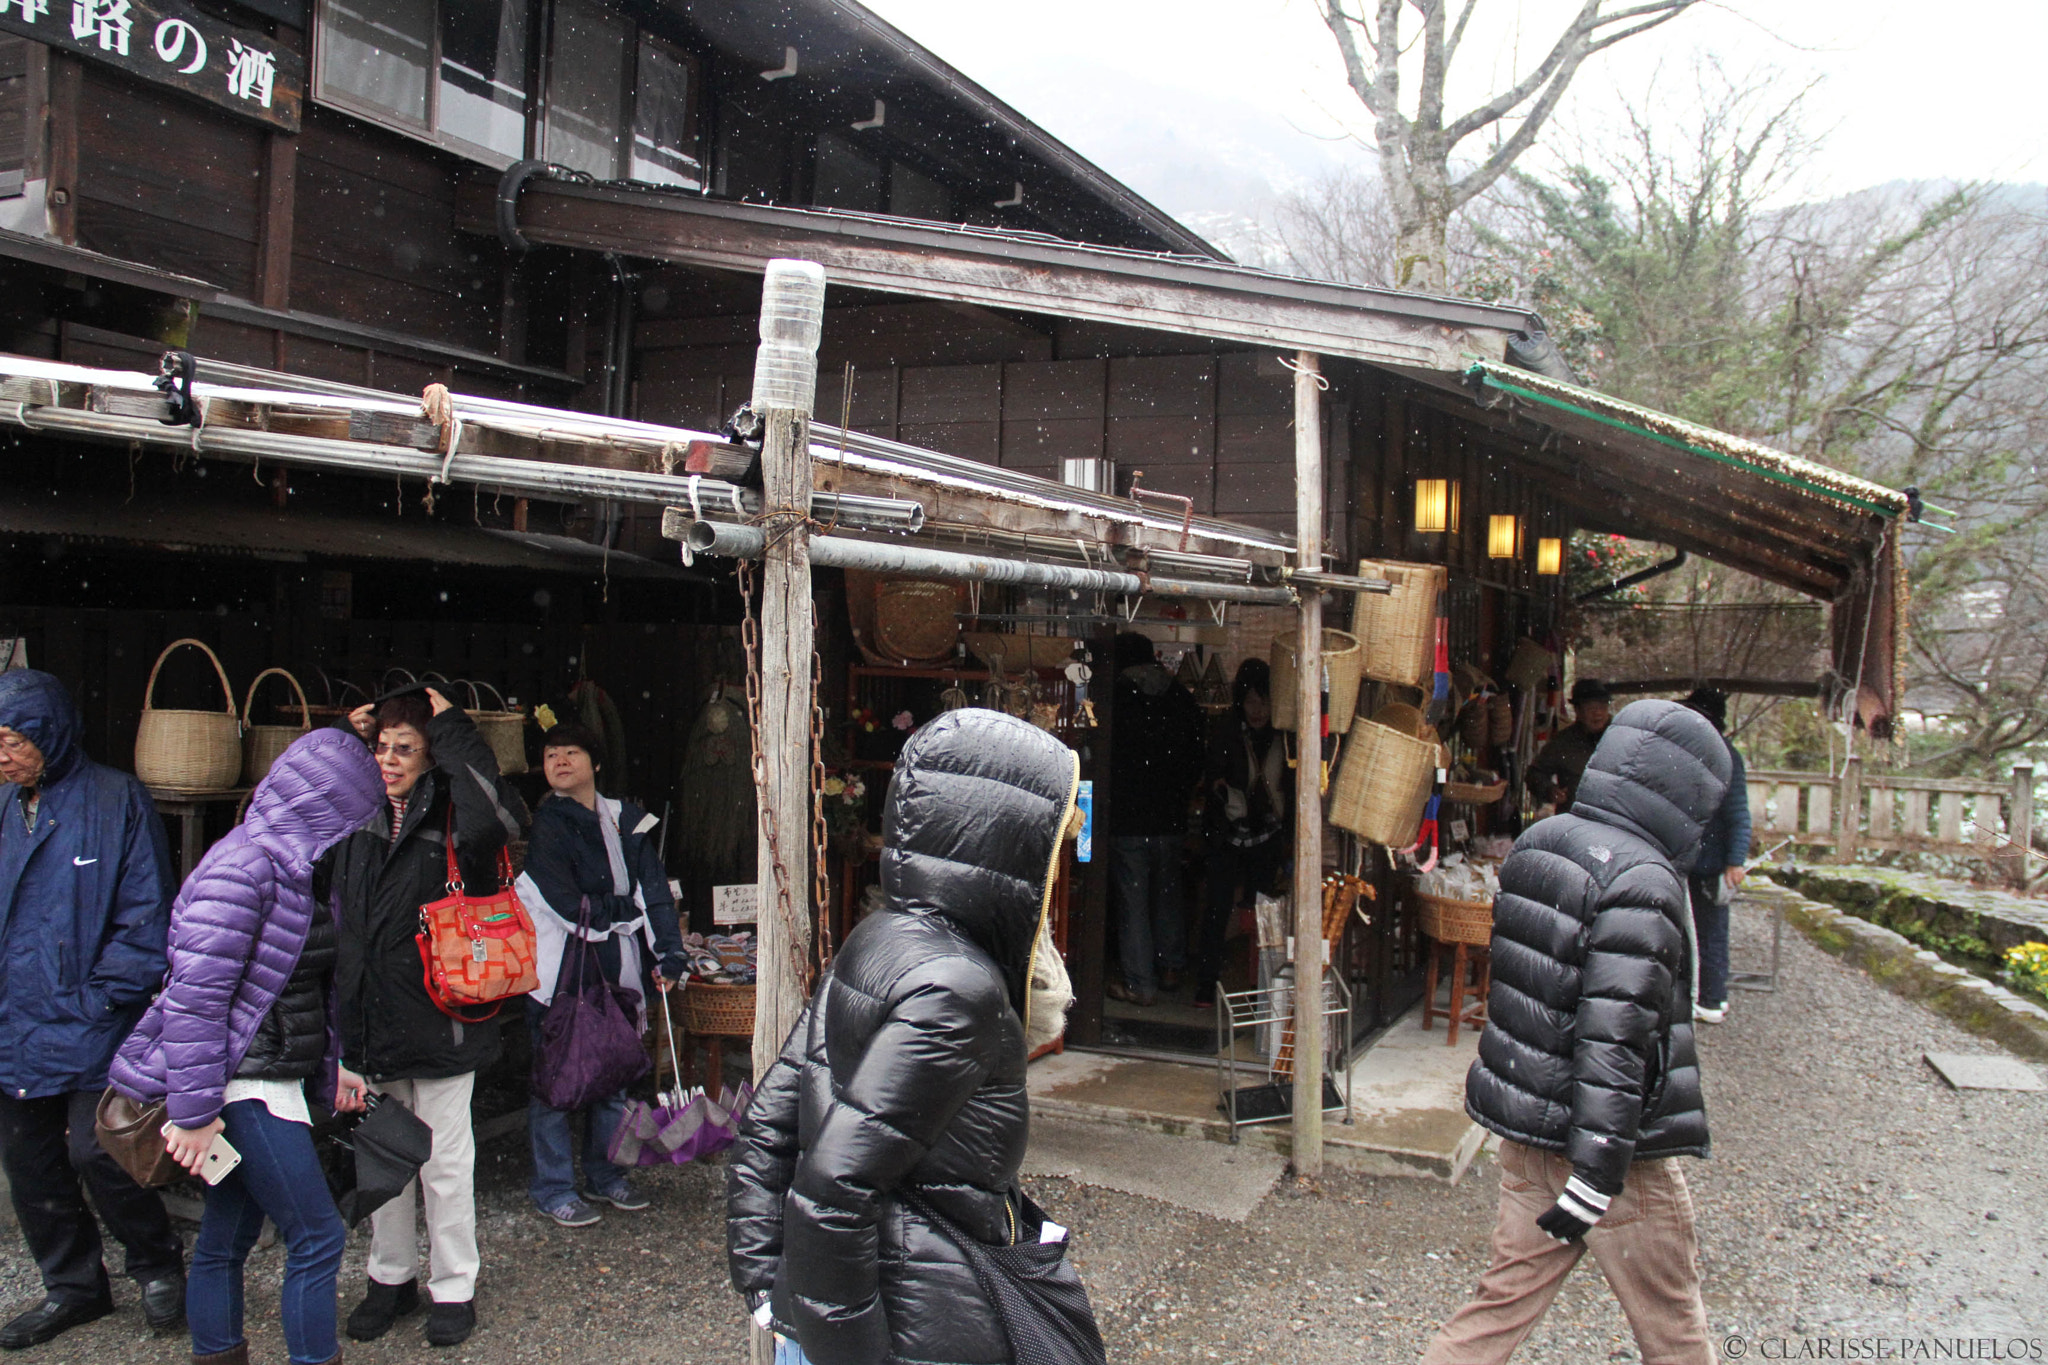 a20ca700404a50f1c03501f29e52a9b3 - Japan Travel Blog April 2015: Shirakawa-go